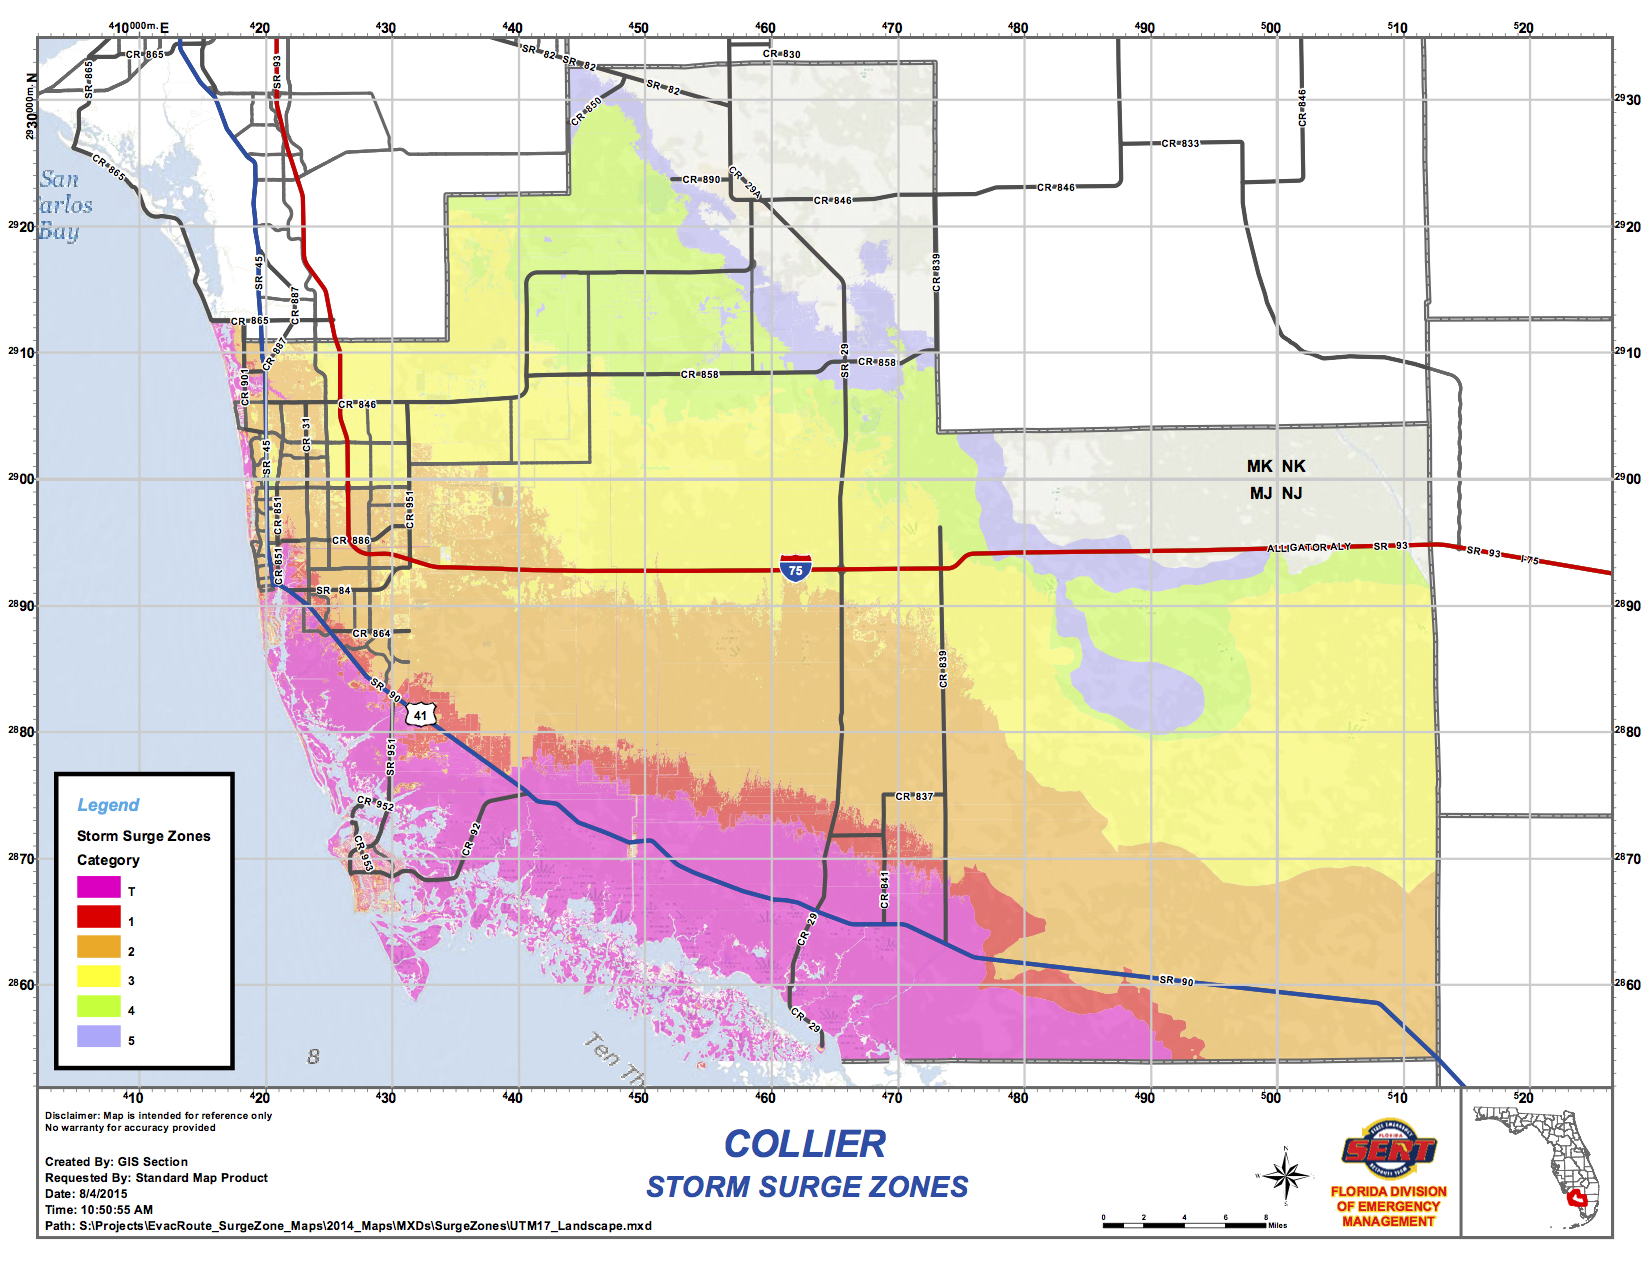 Collier County Wildfire Map.Collier County Storm Surge Zones